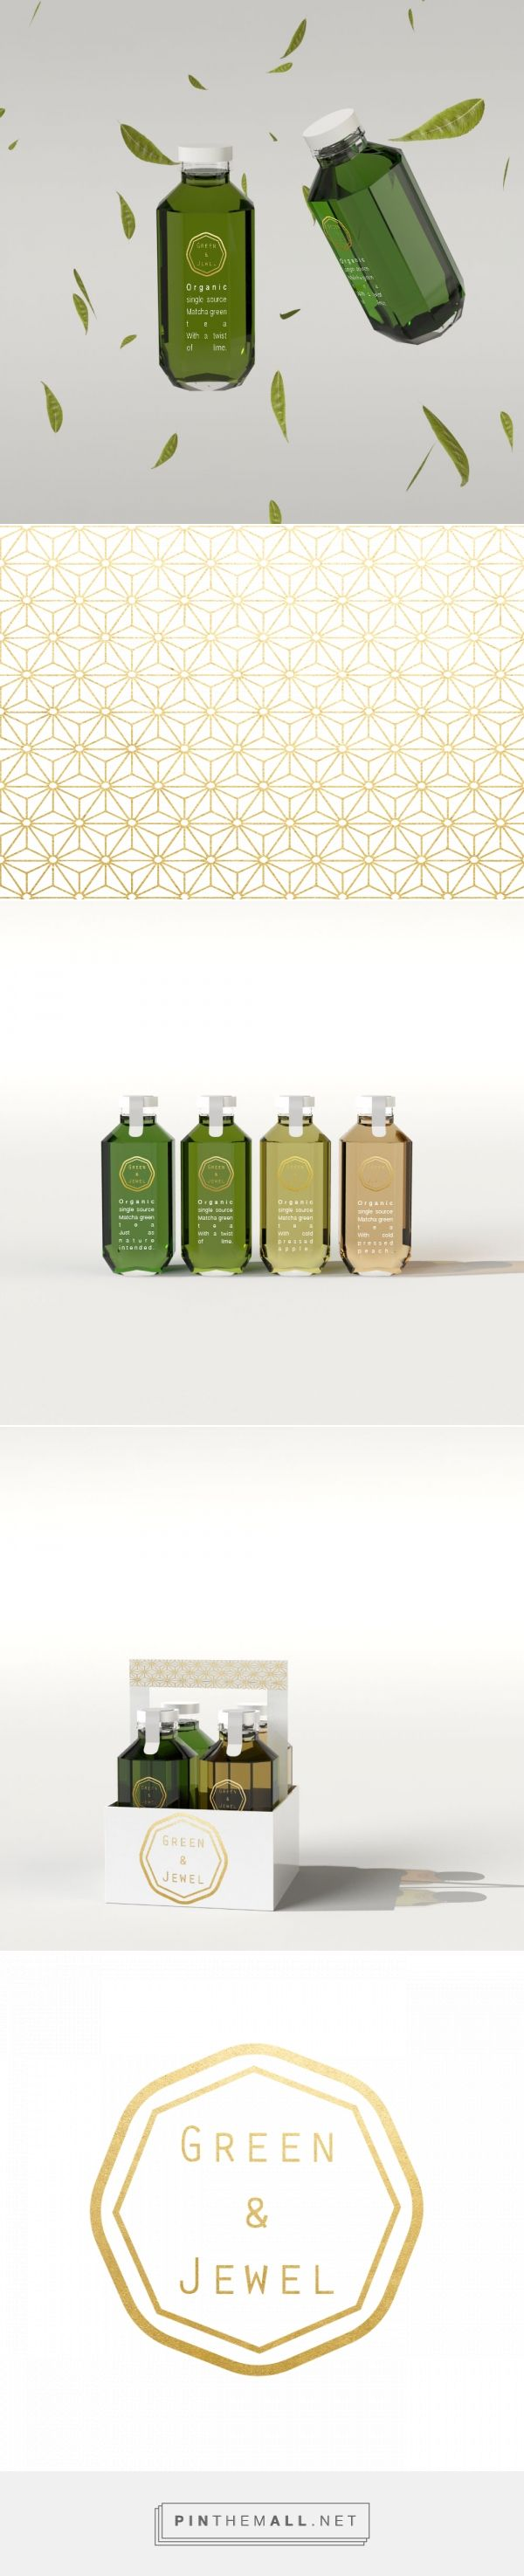 Green & Jewel Organic Tea Packaging by Kris Lenne | Fivestar Branding Agency – Design and Branding Agency & Curated Inspiration Gallery